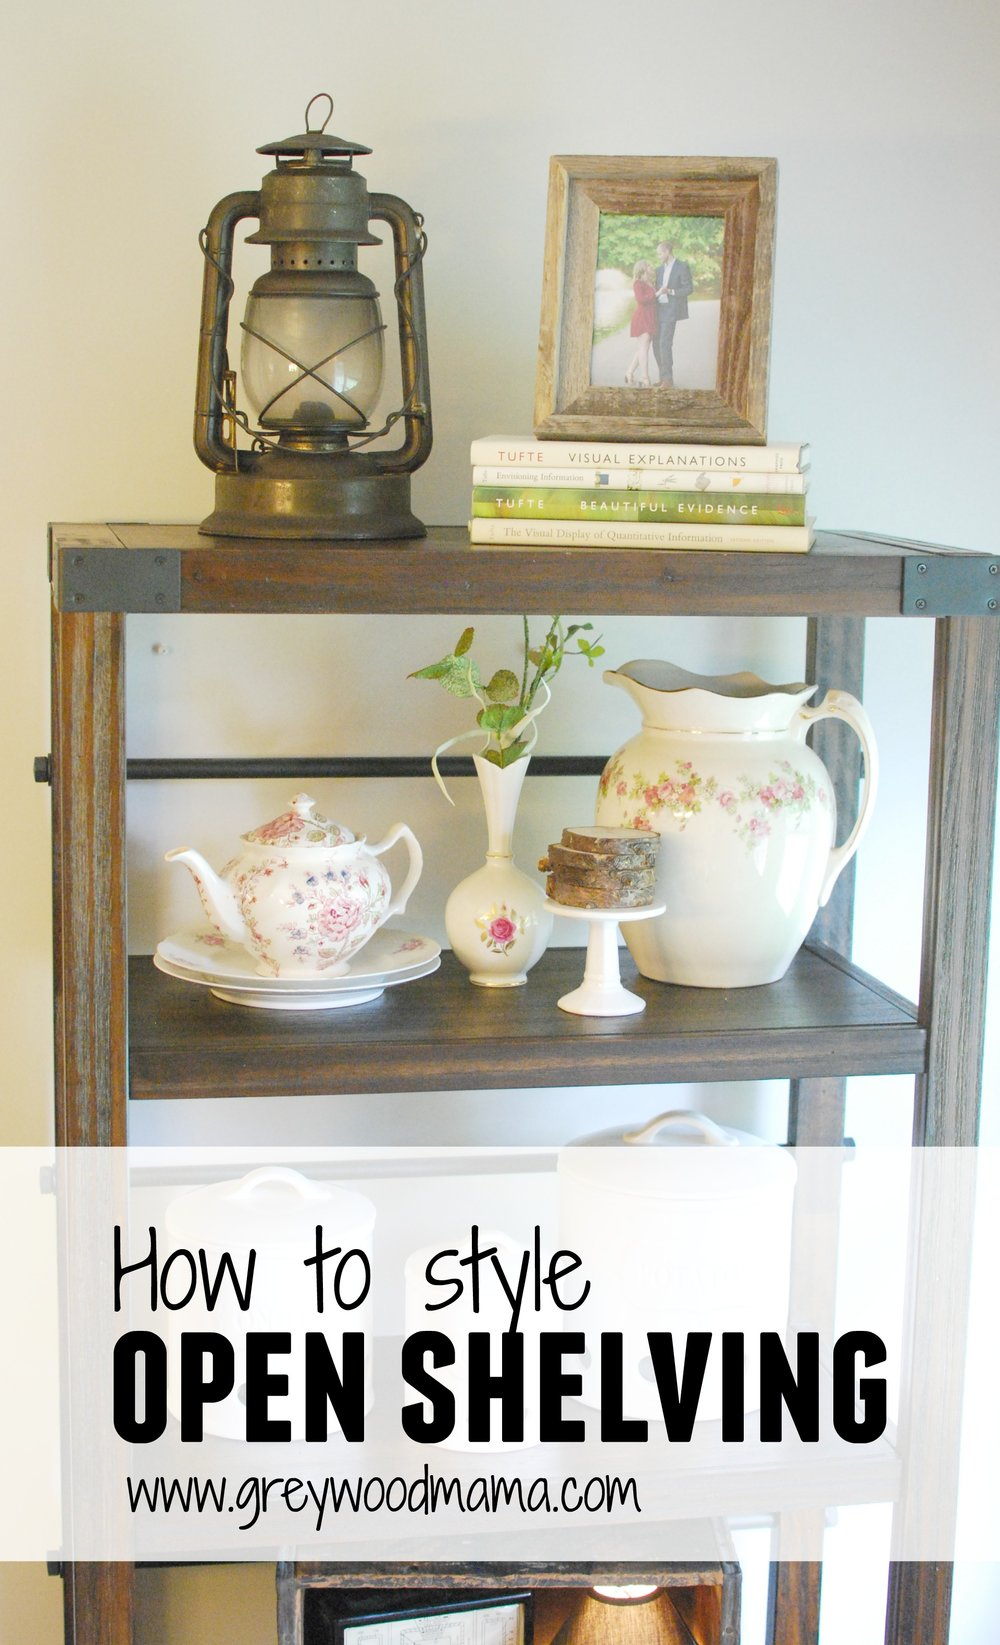 how-to-style-open-shelving.jpg